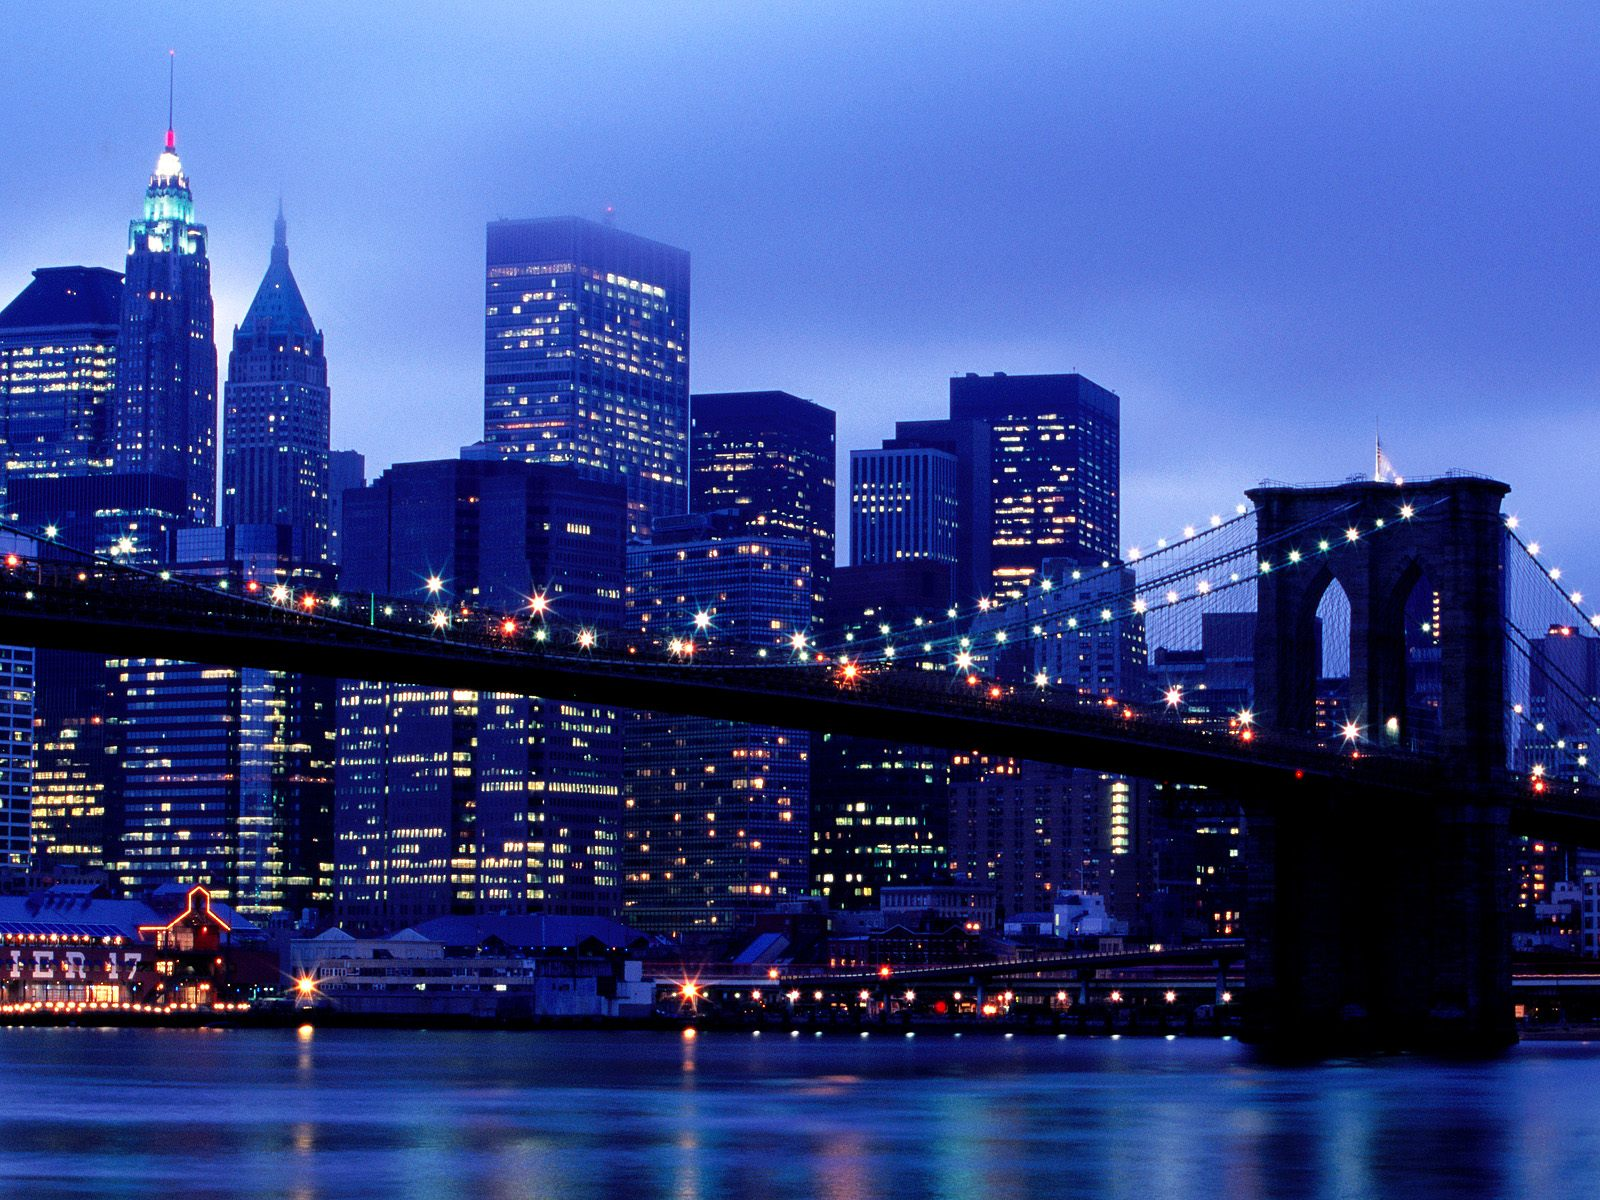 http://4.bp.blogspot.com/-fC1F0purfqg/Tyui2zMYfHI/AAAAAAAABao/pGZ6lNl5dHQ/s1600/Manhattan_Skyline_From_Brooklyn_New_York.jpg